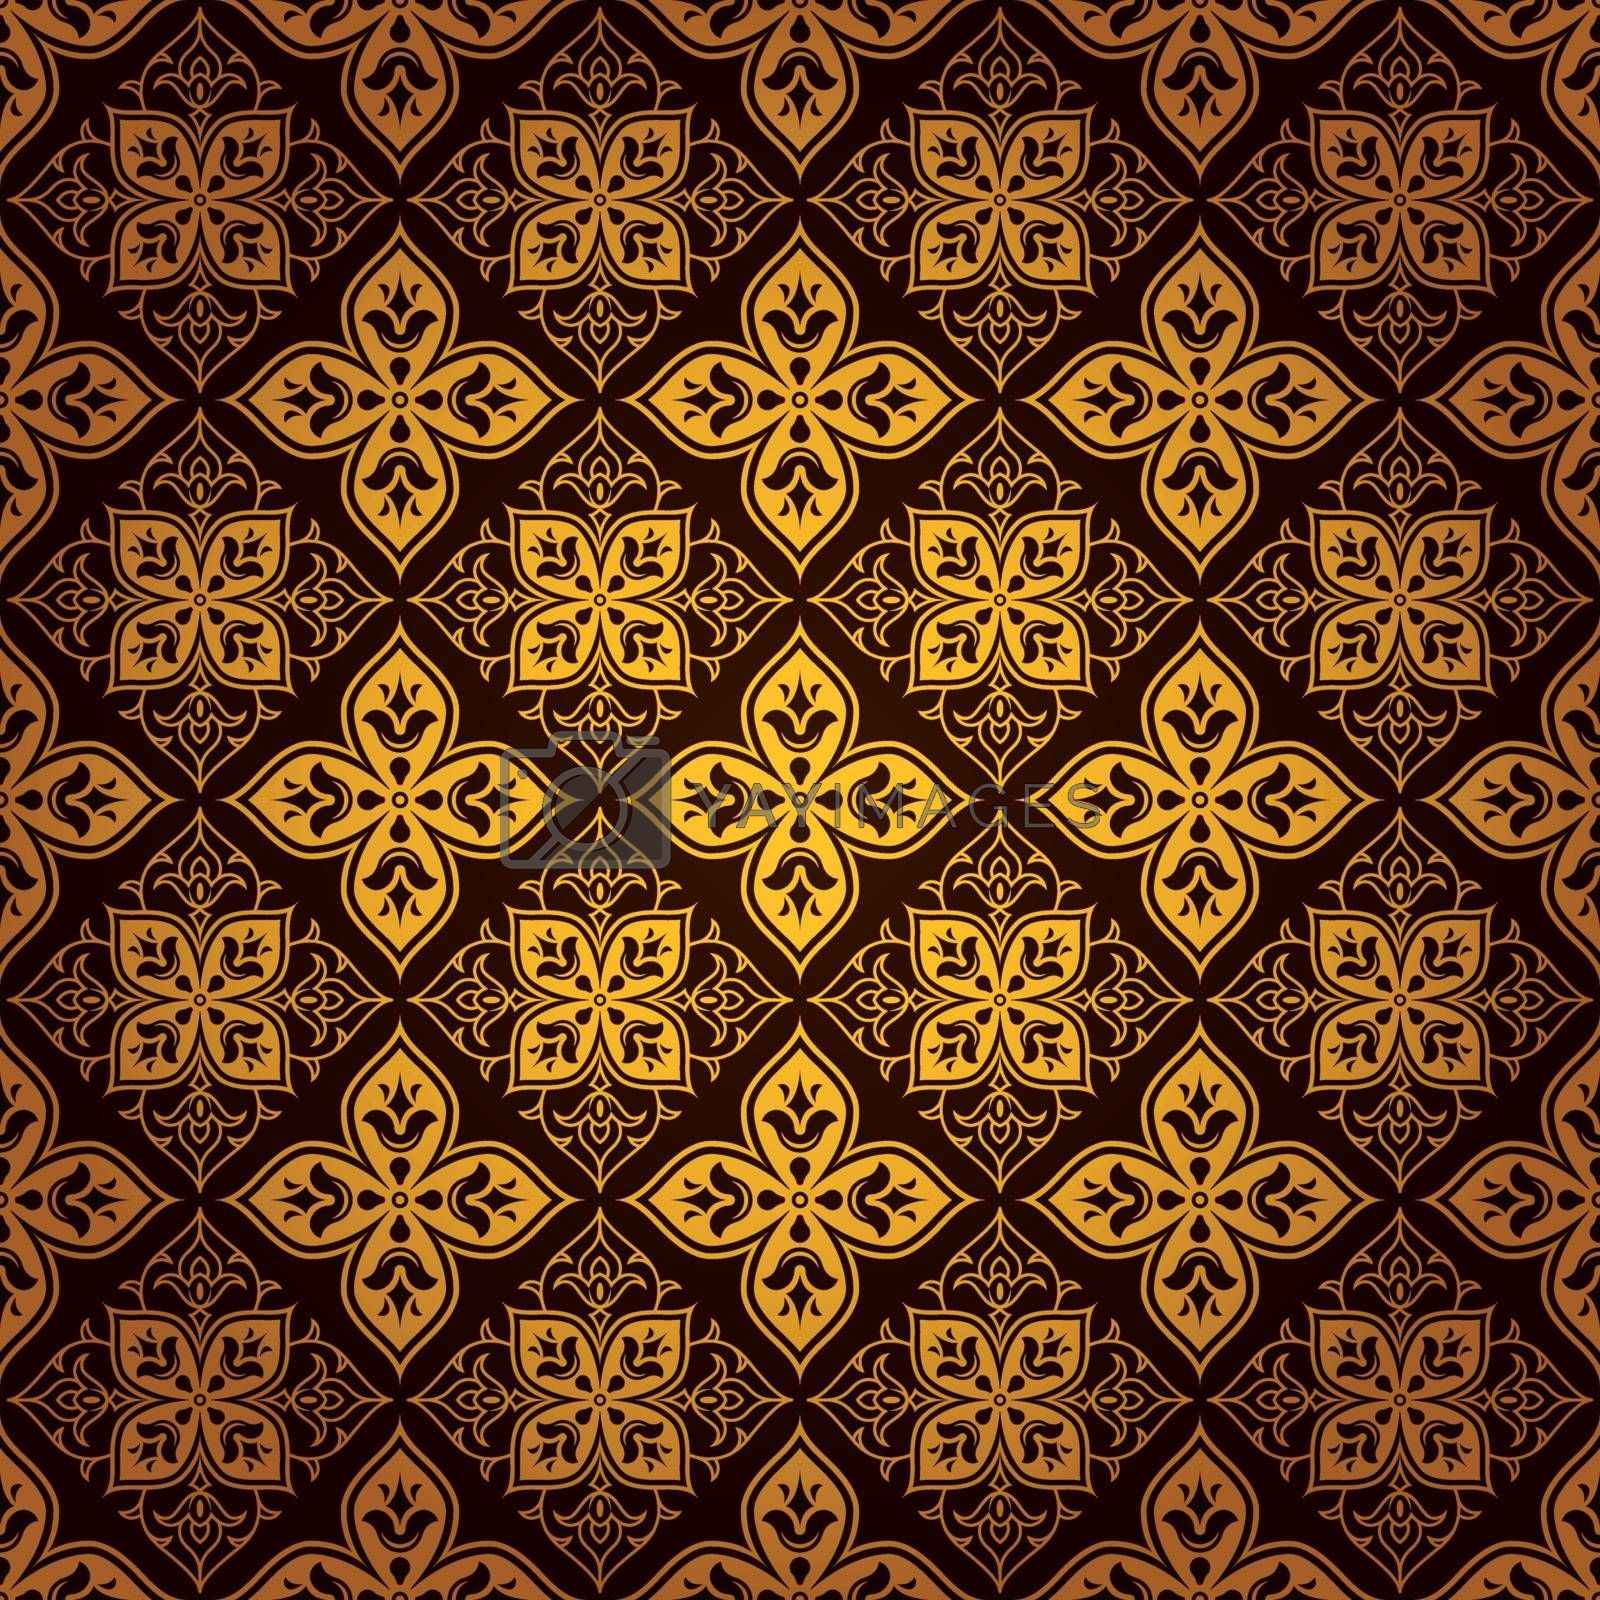 Decorative ornate gold tile pattern background by adrian_n